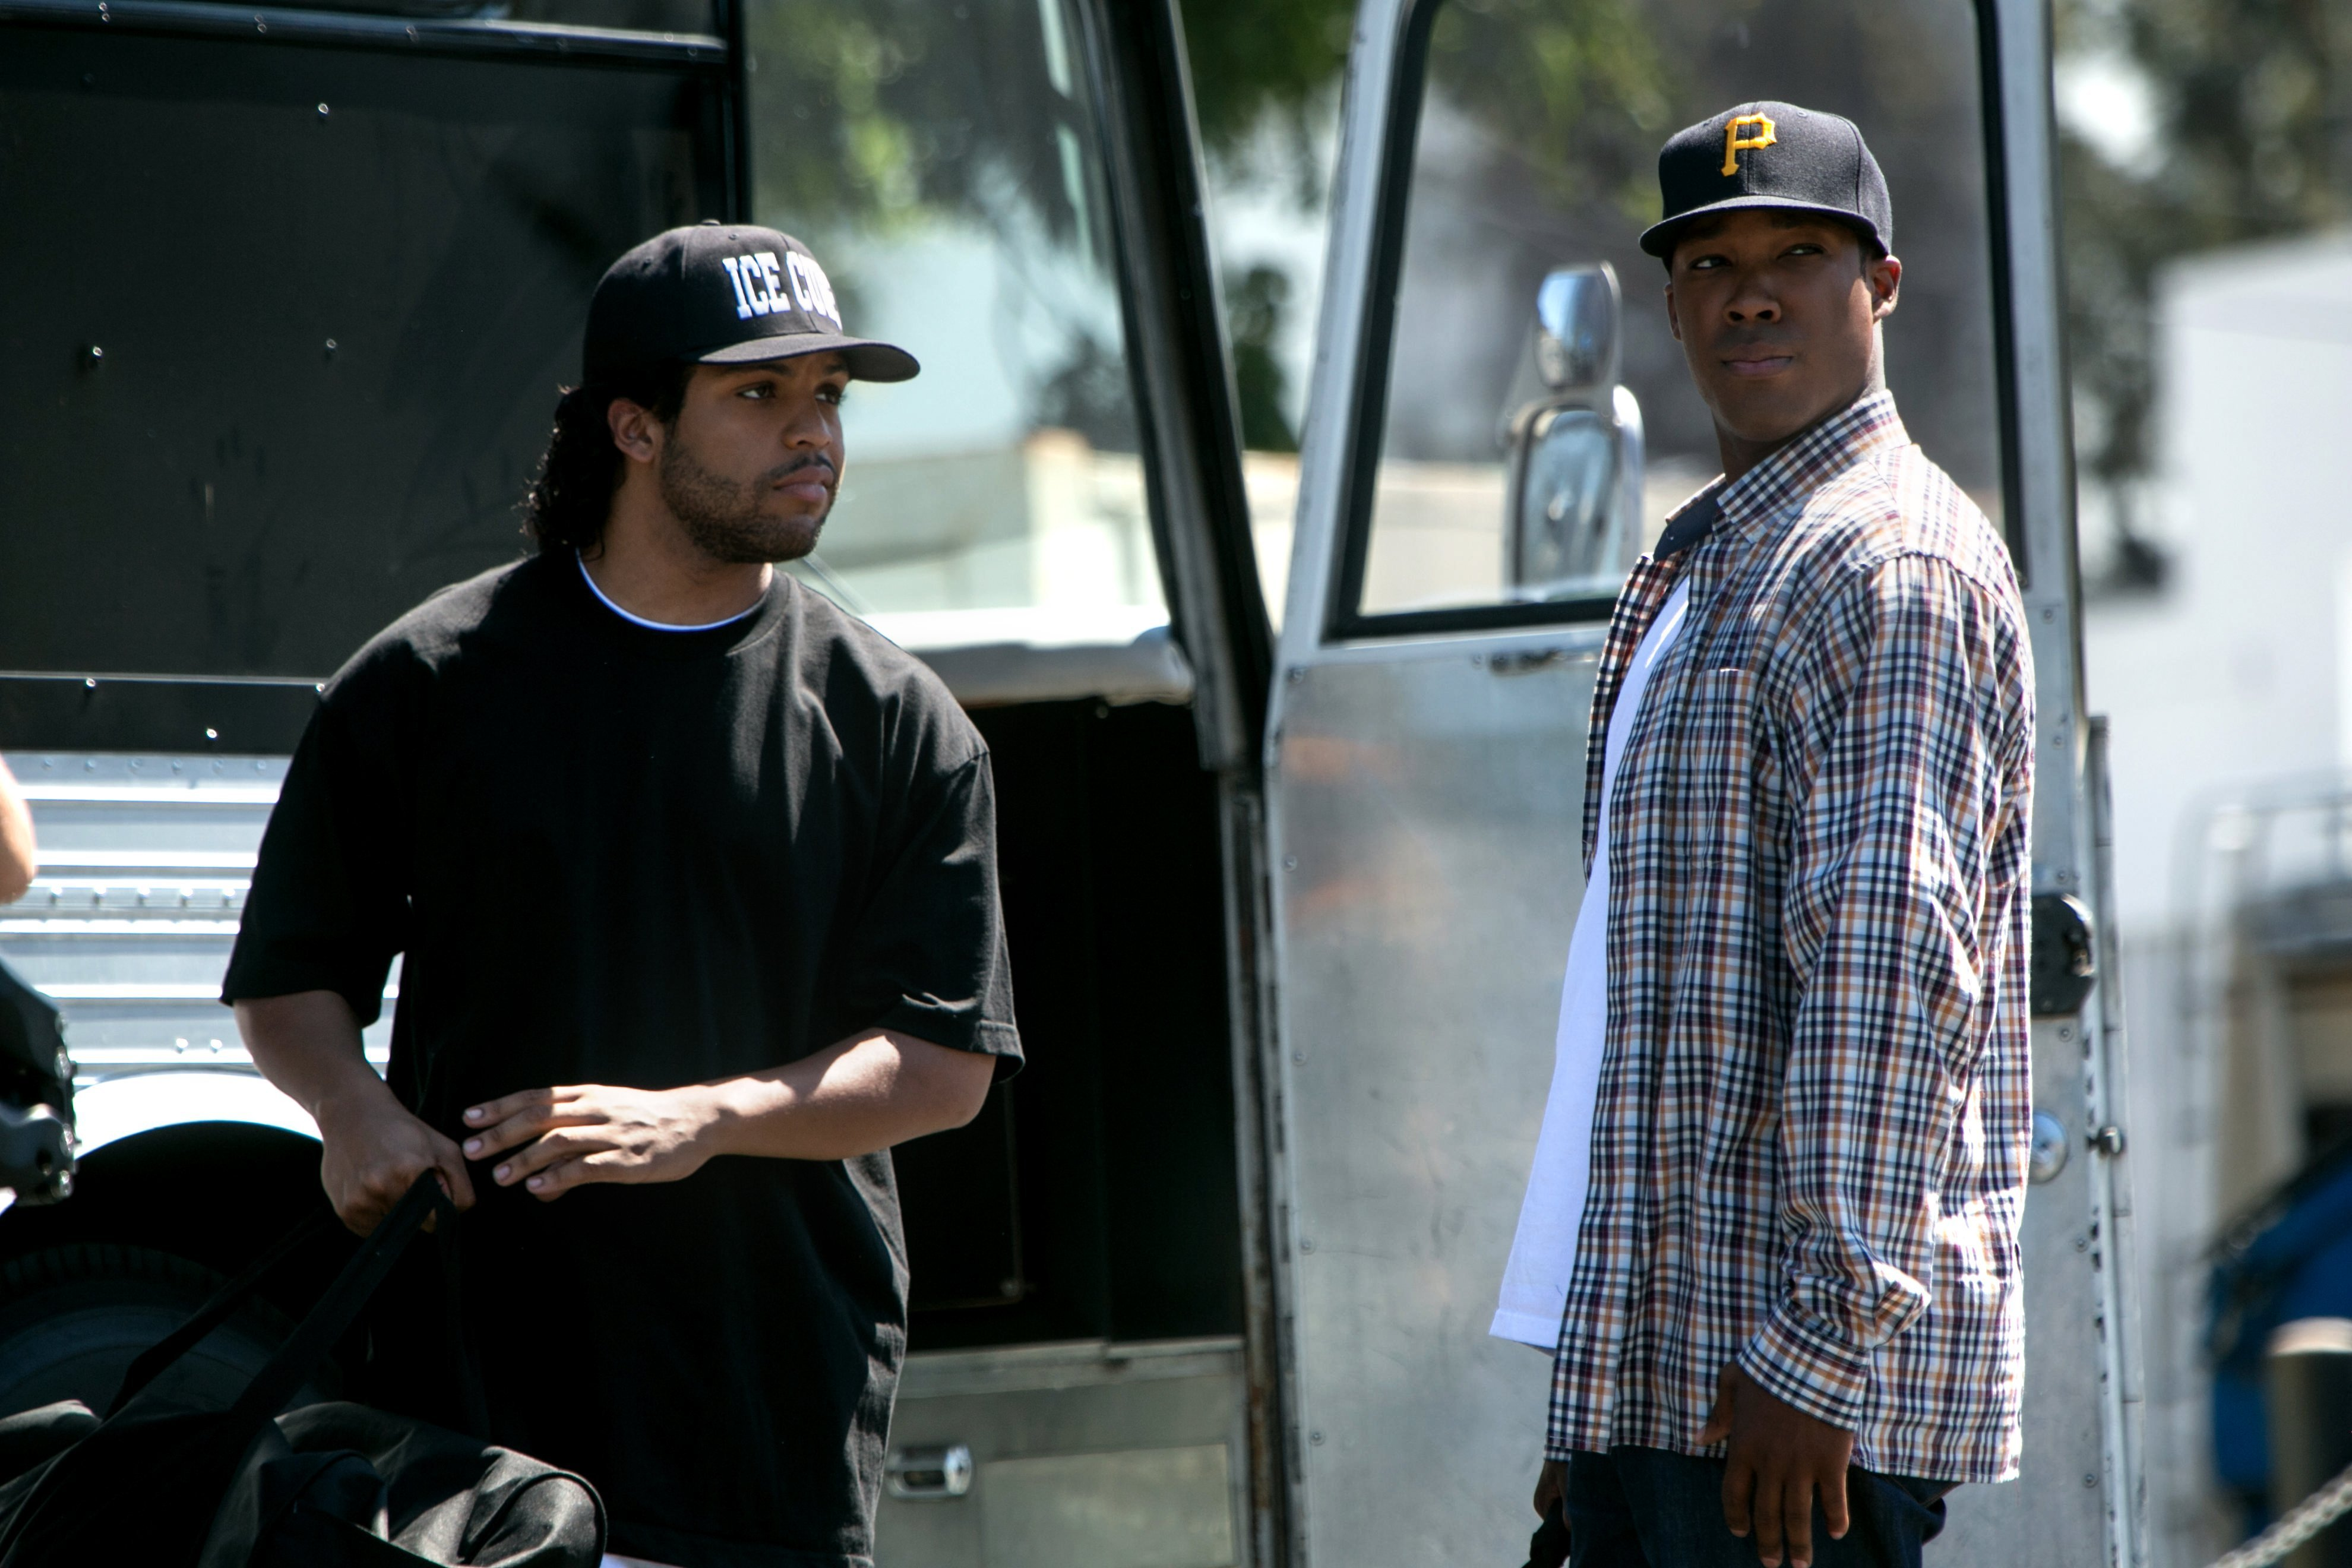 The life of eazy e in straight outta compton a movie by f